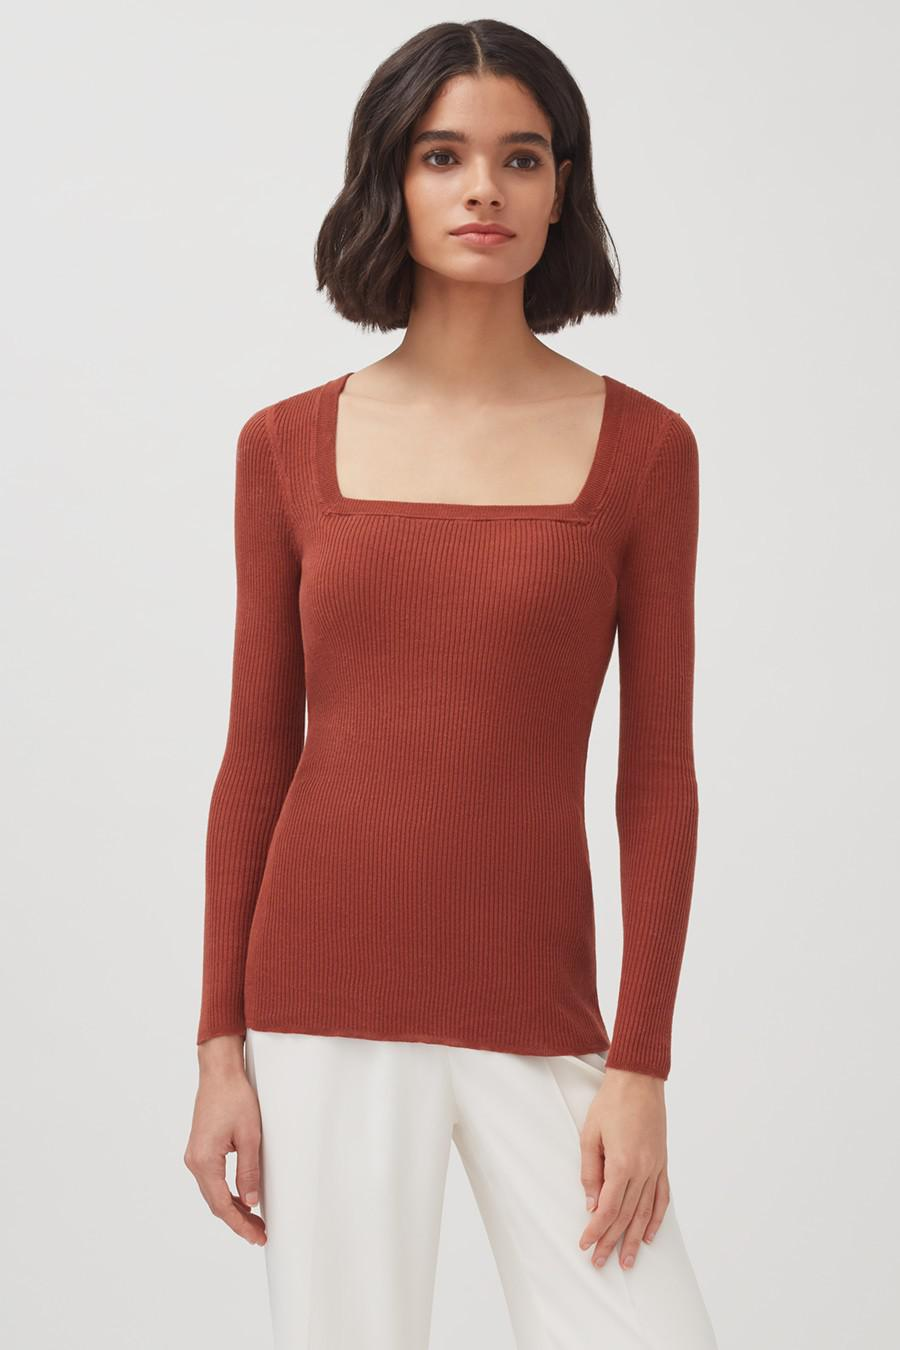 Women's Cotton Cashmere Square Neck Rib Sweater in Terracotta | Size: XL | Cotton Blend by Cuyana 1